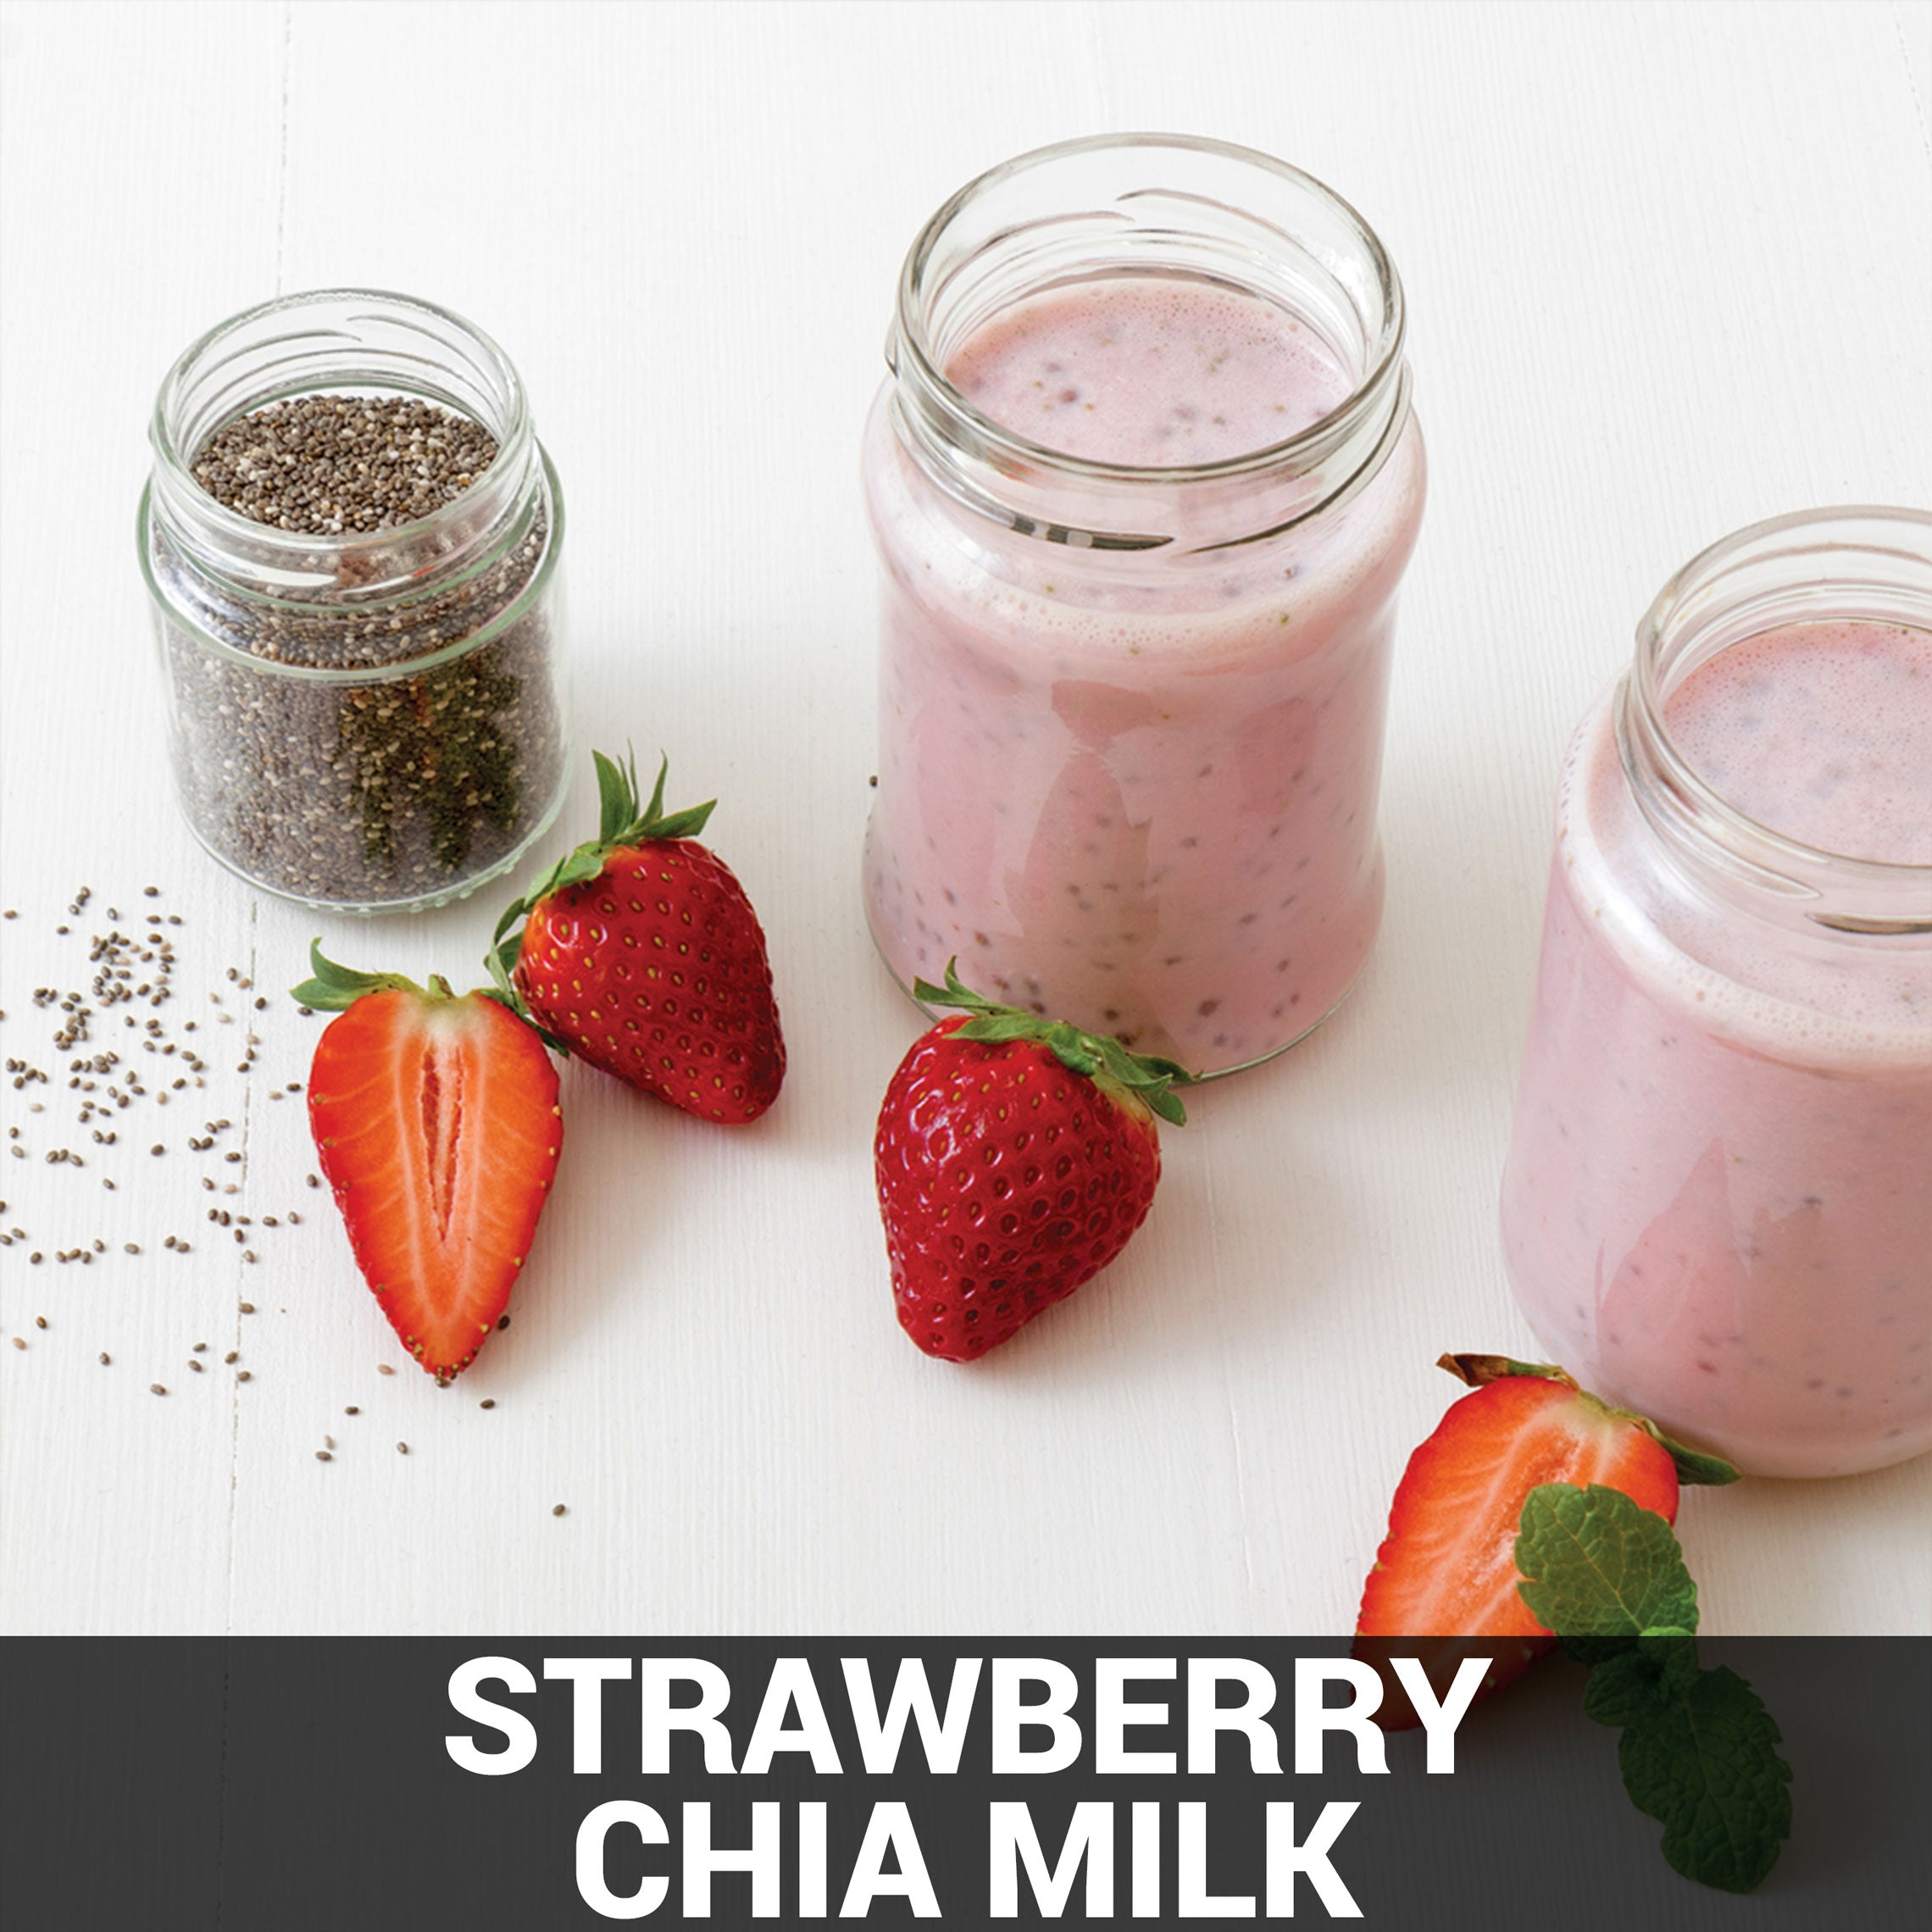 Strawberry Chia Milk Recipe - Foods Alive